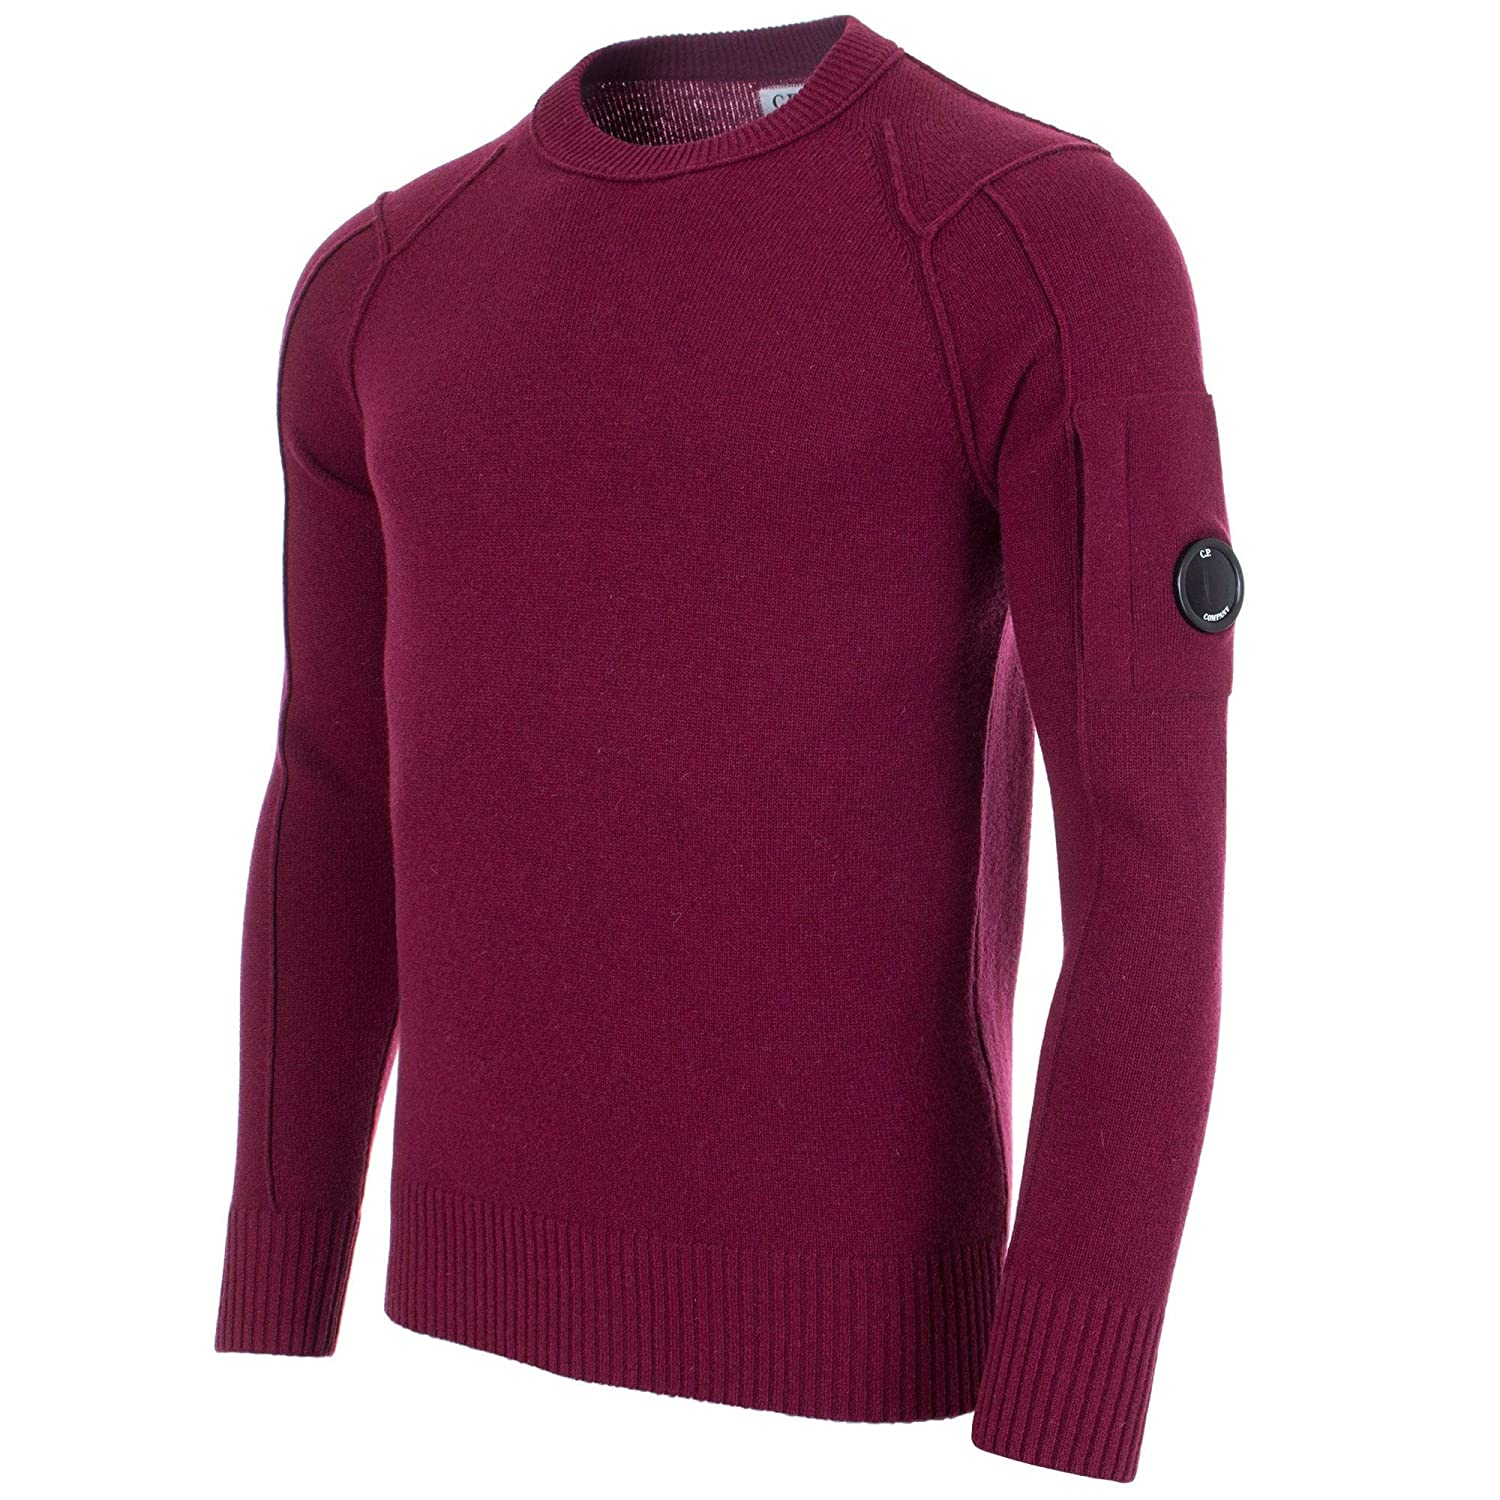 2fcae9bc009 C.P. Company Lens Sleeve Crew Neck Jumper: Amazon.co.uk: Clothing